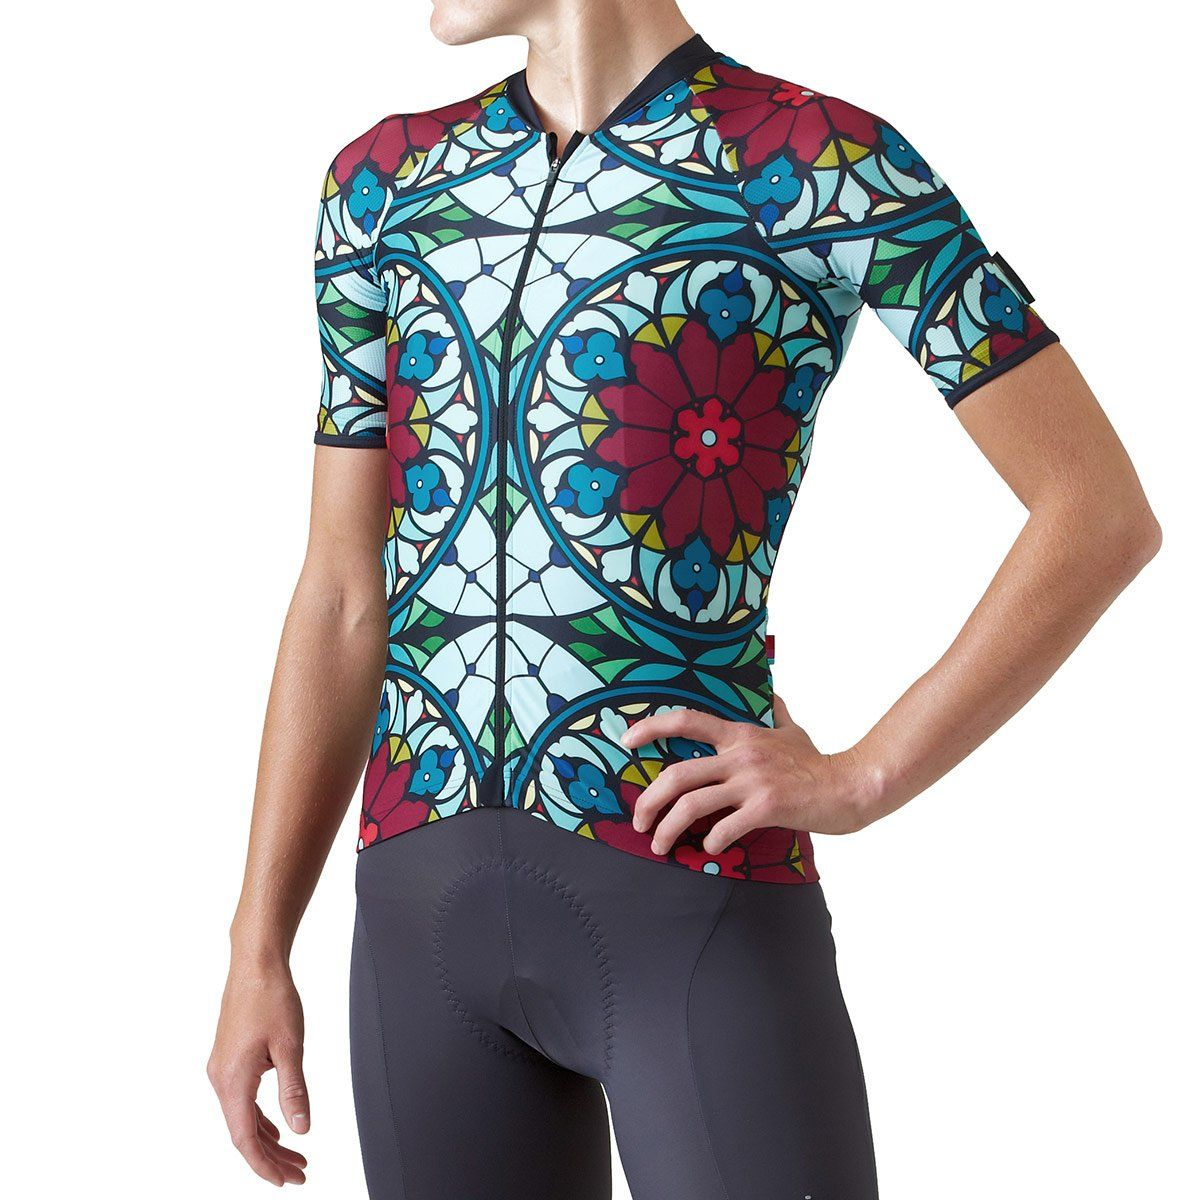 Velocio Stained Glass Jersey